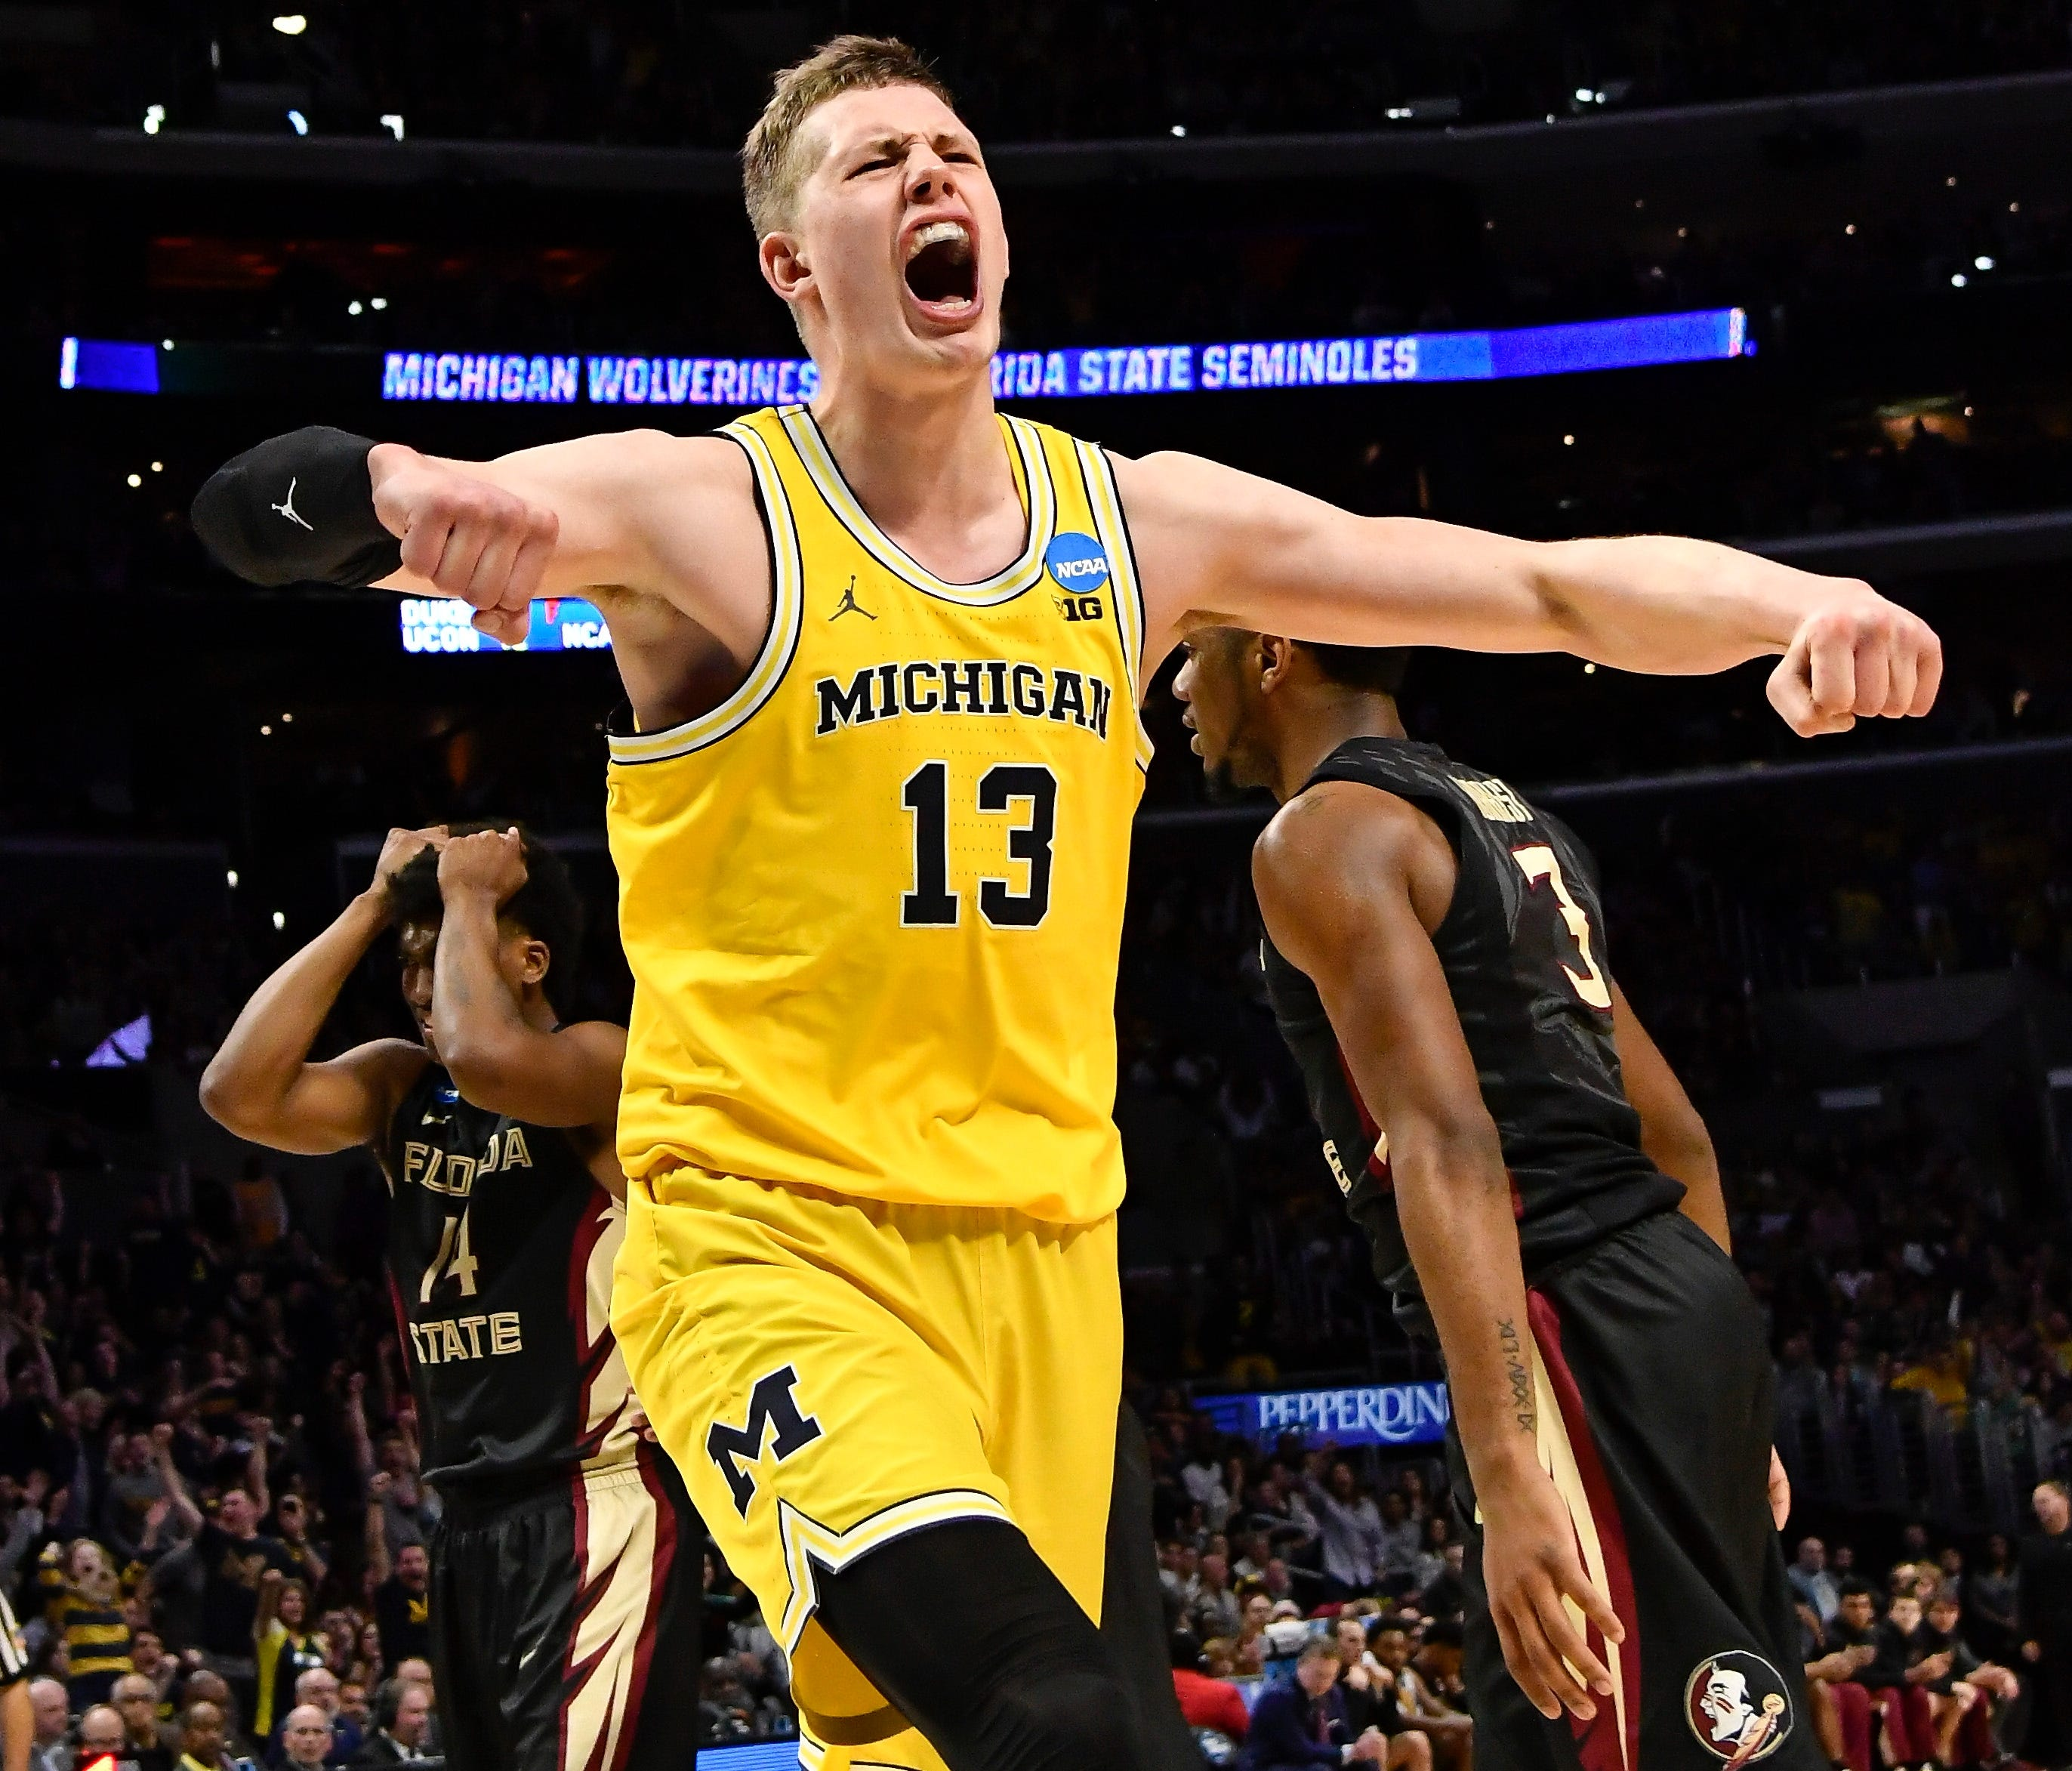 Michigan forward Moritz Wagner celebrates after scoring against Florida State in the championship game of the West regional of the 2018 NCAA tournament.